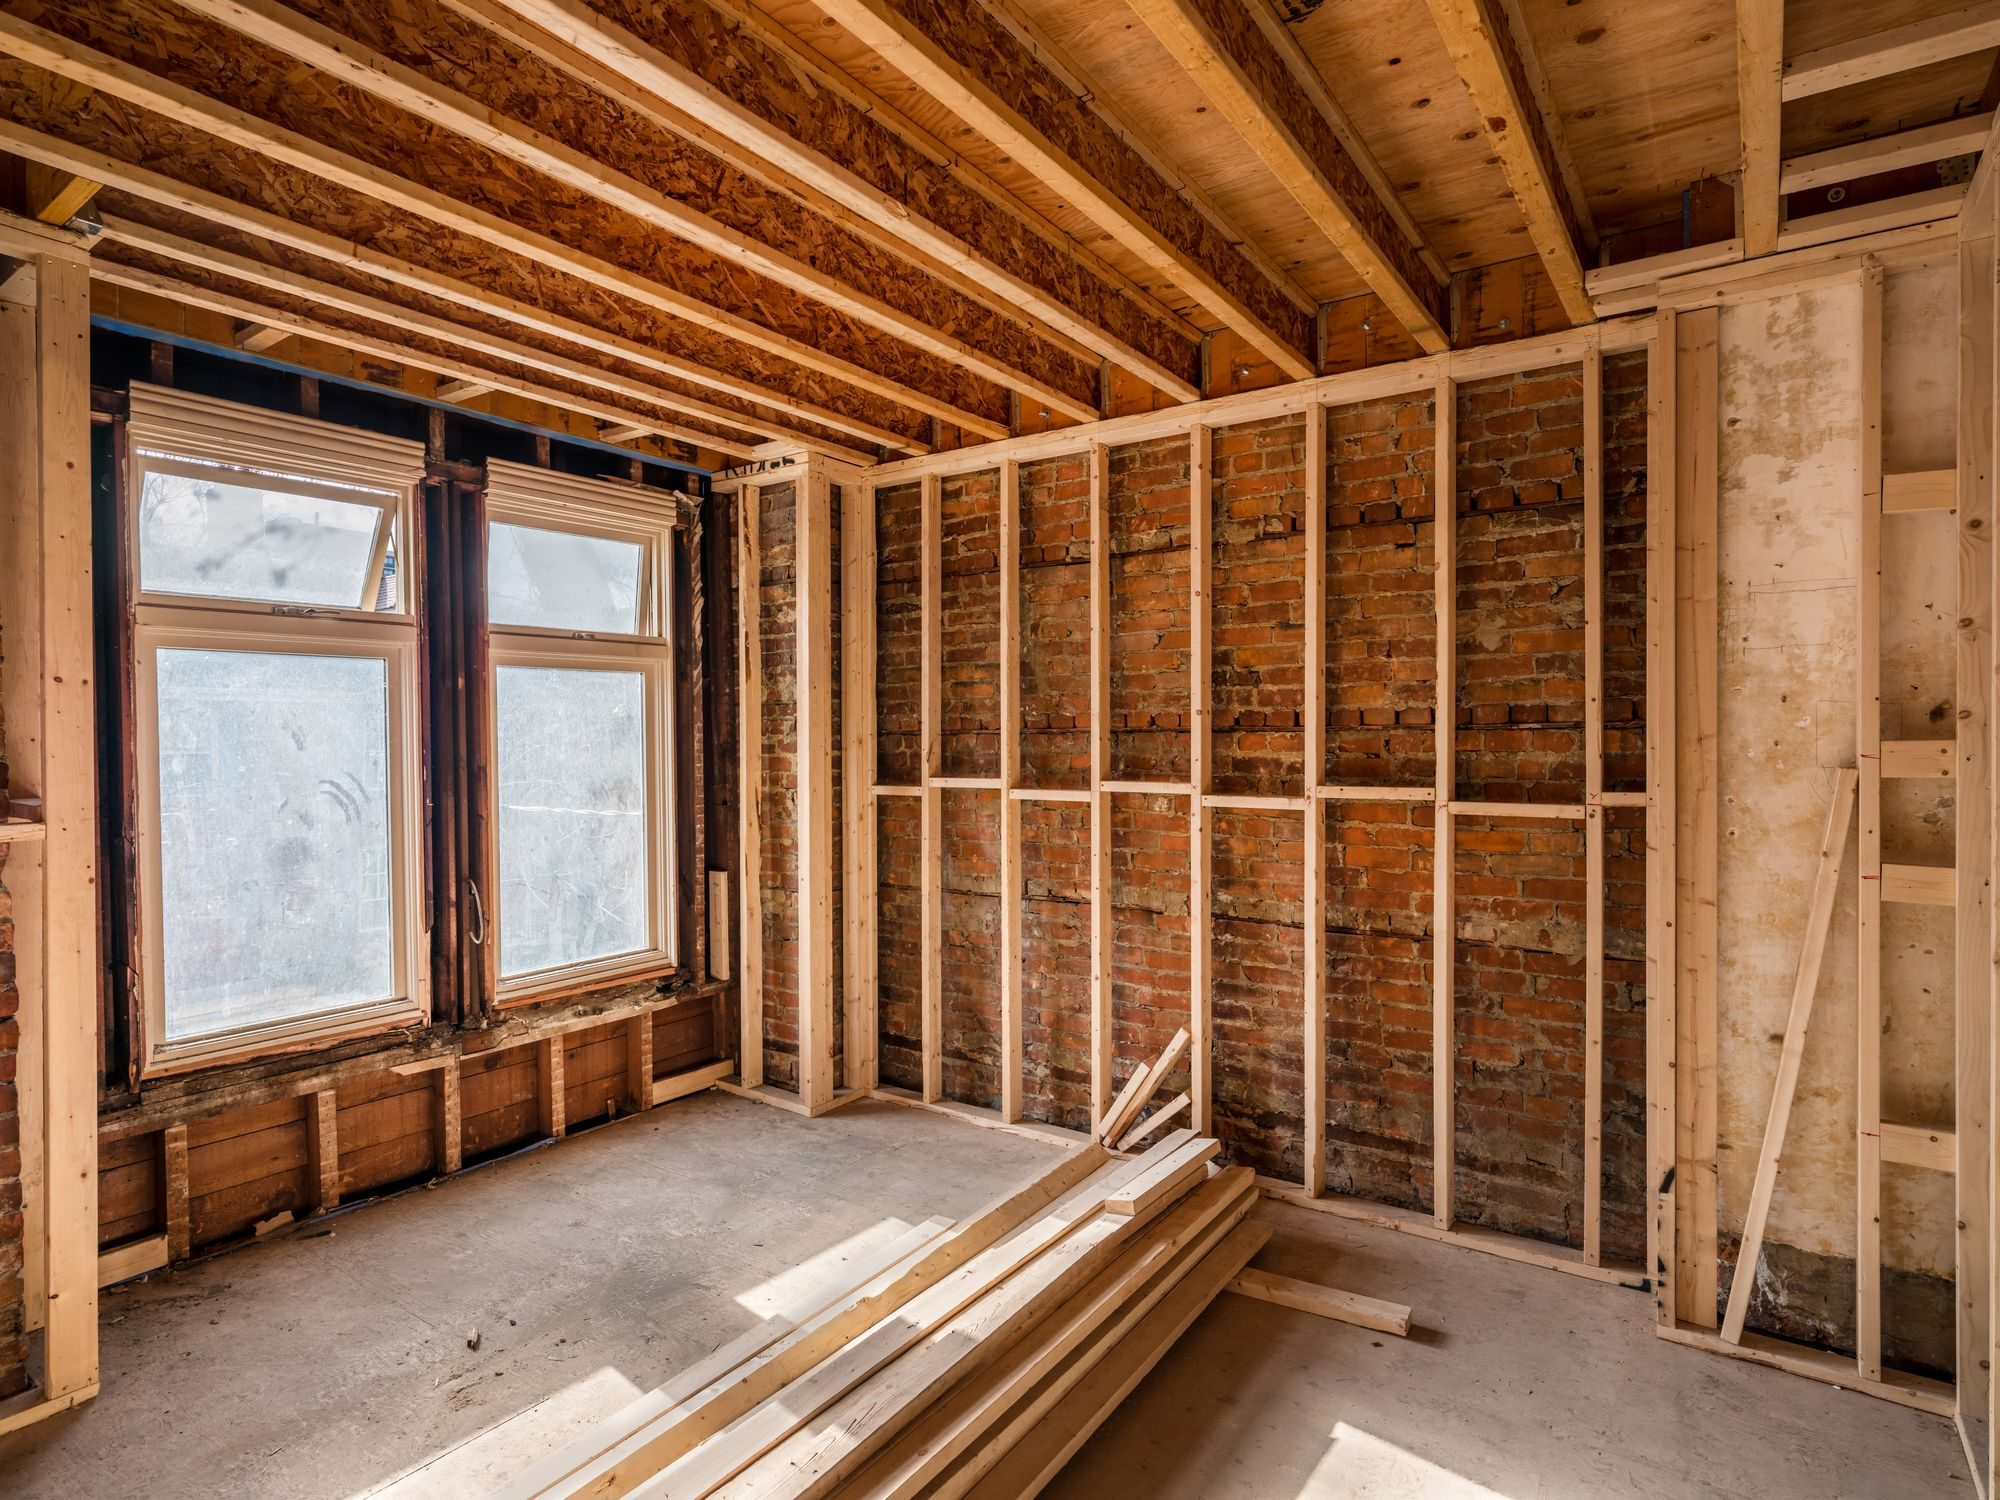 What To Consider When Remodeling Your Home's Interior